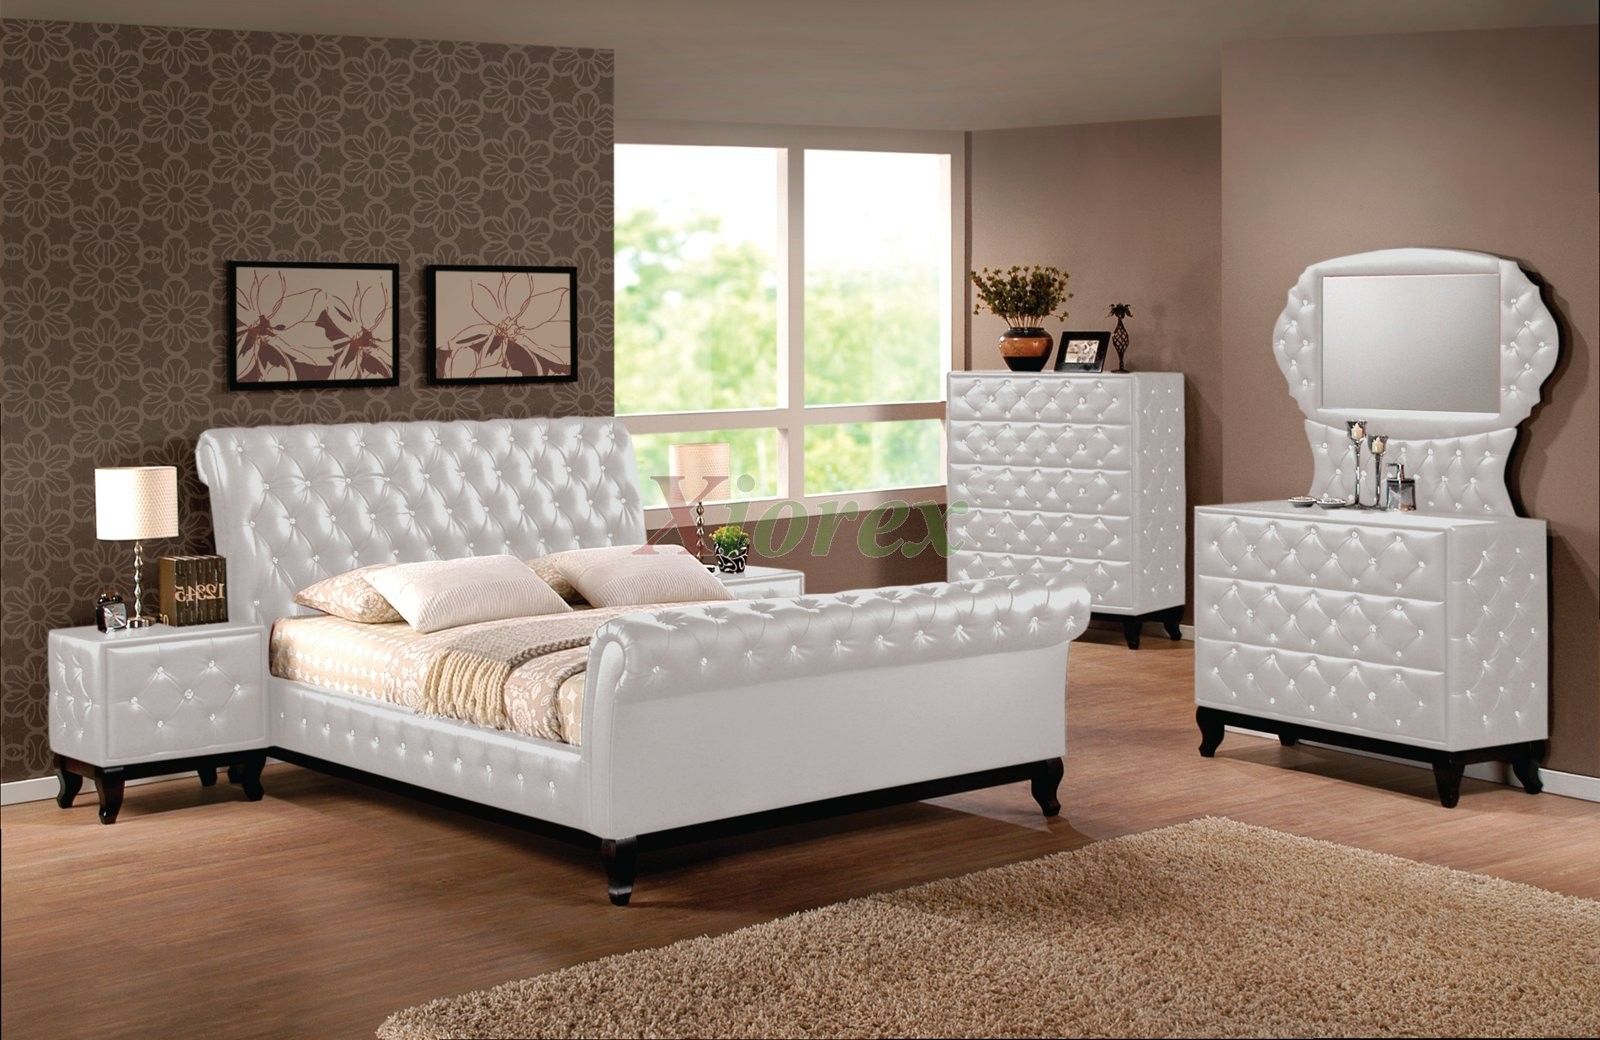 Upholstered sleigh platform bedroom furniture set 151 xiorex for Bedroom furniture